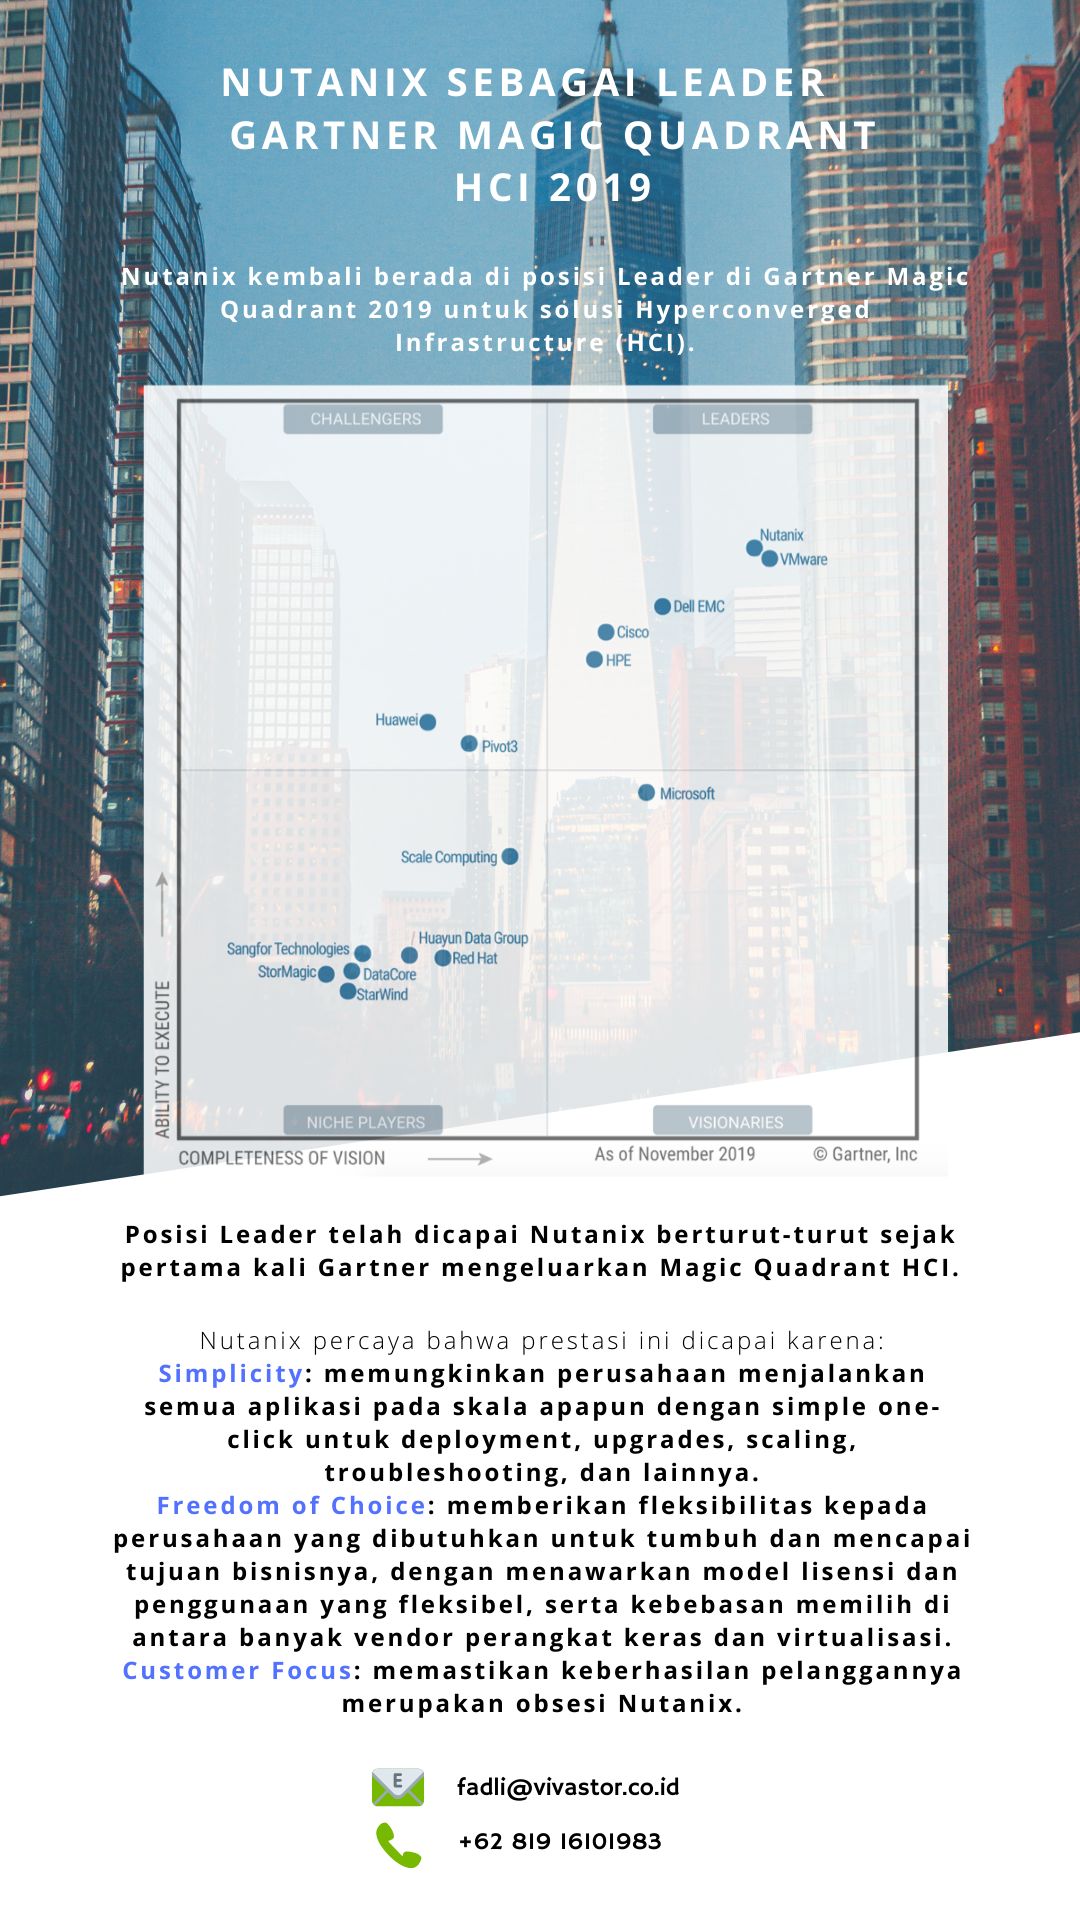 Nutanix Sebagai Leader di Gartner Magic Quadrant HCI 2019